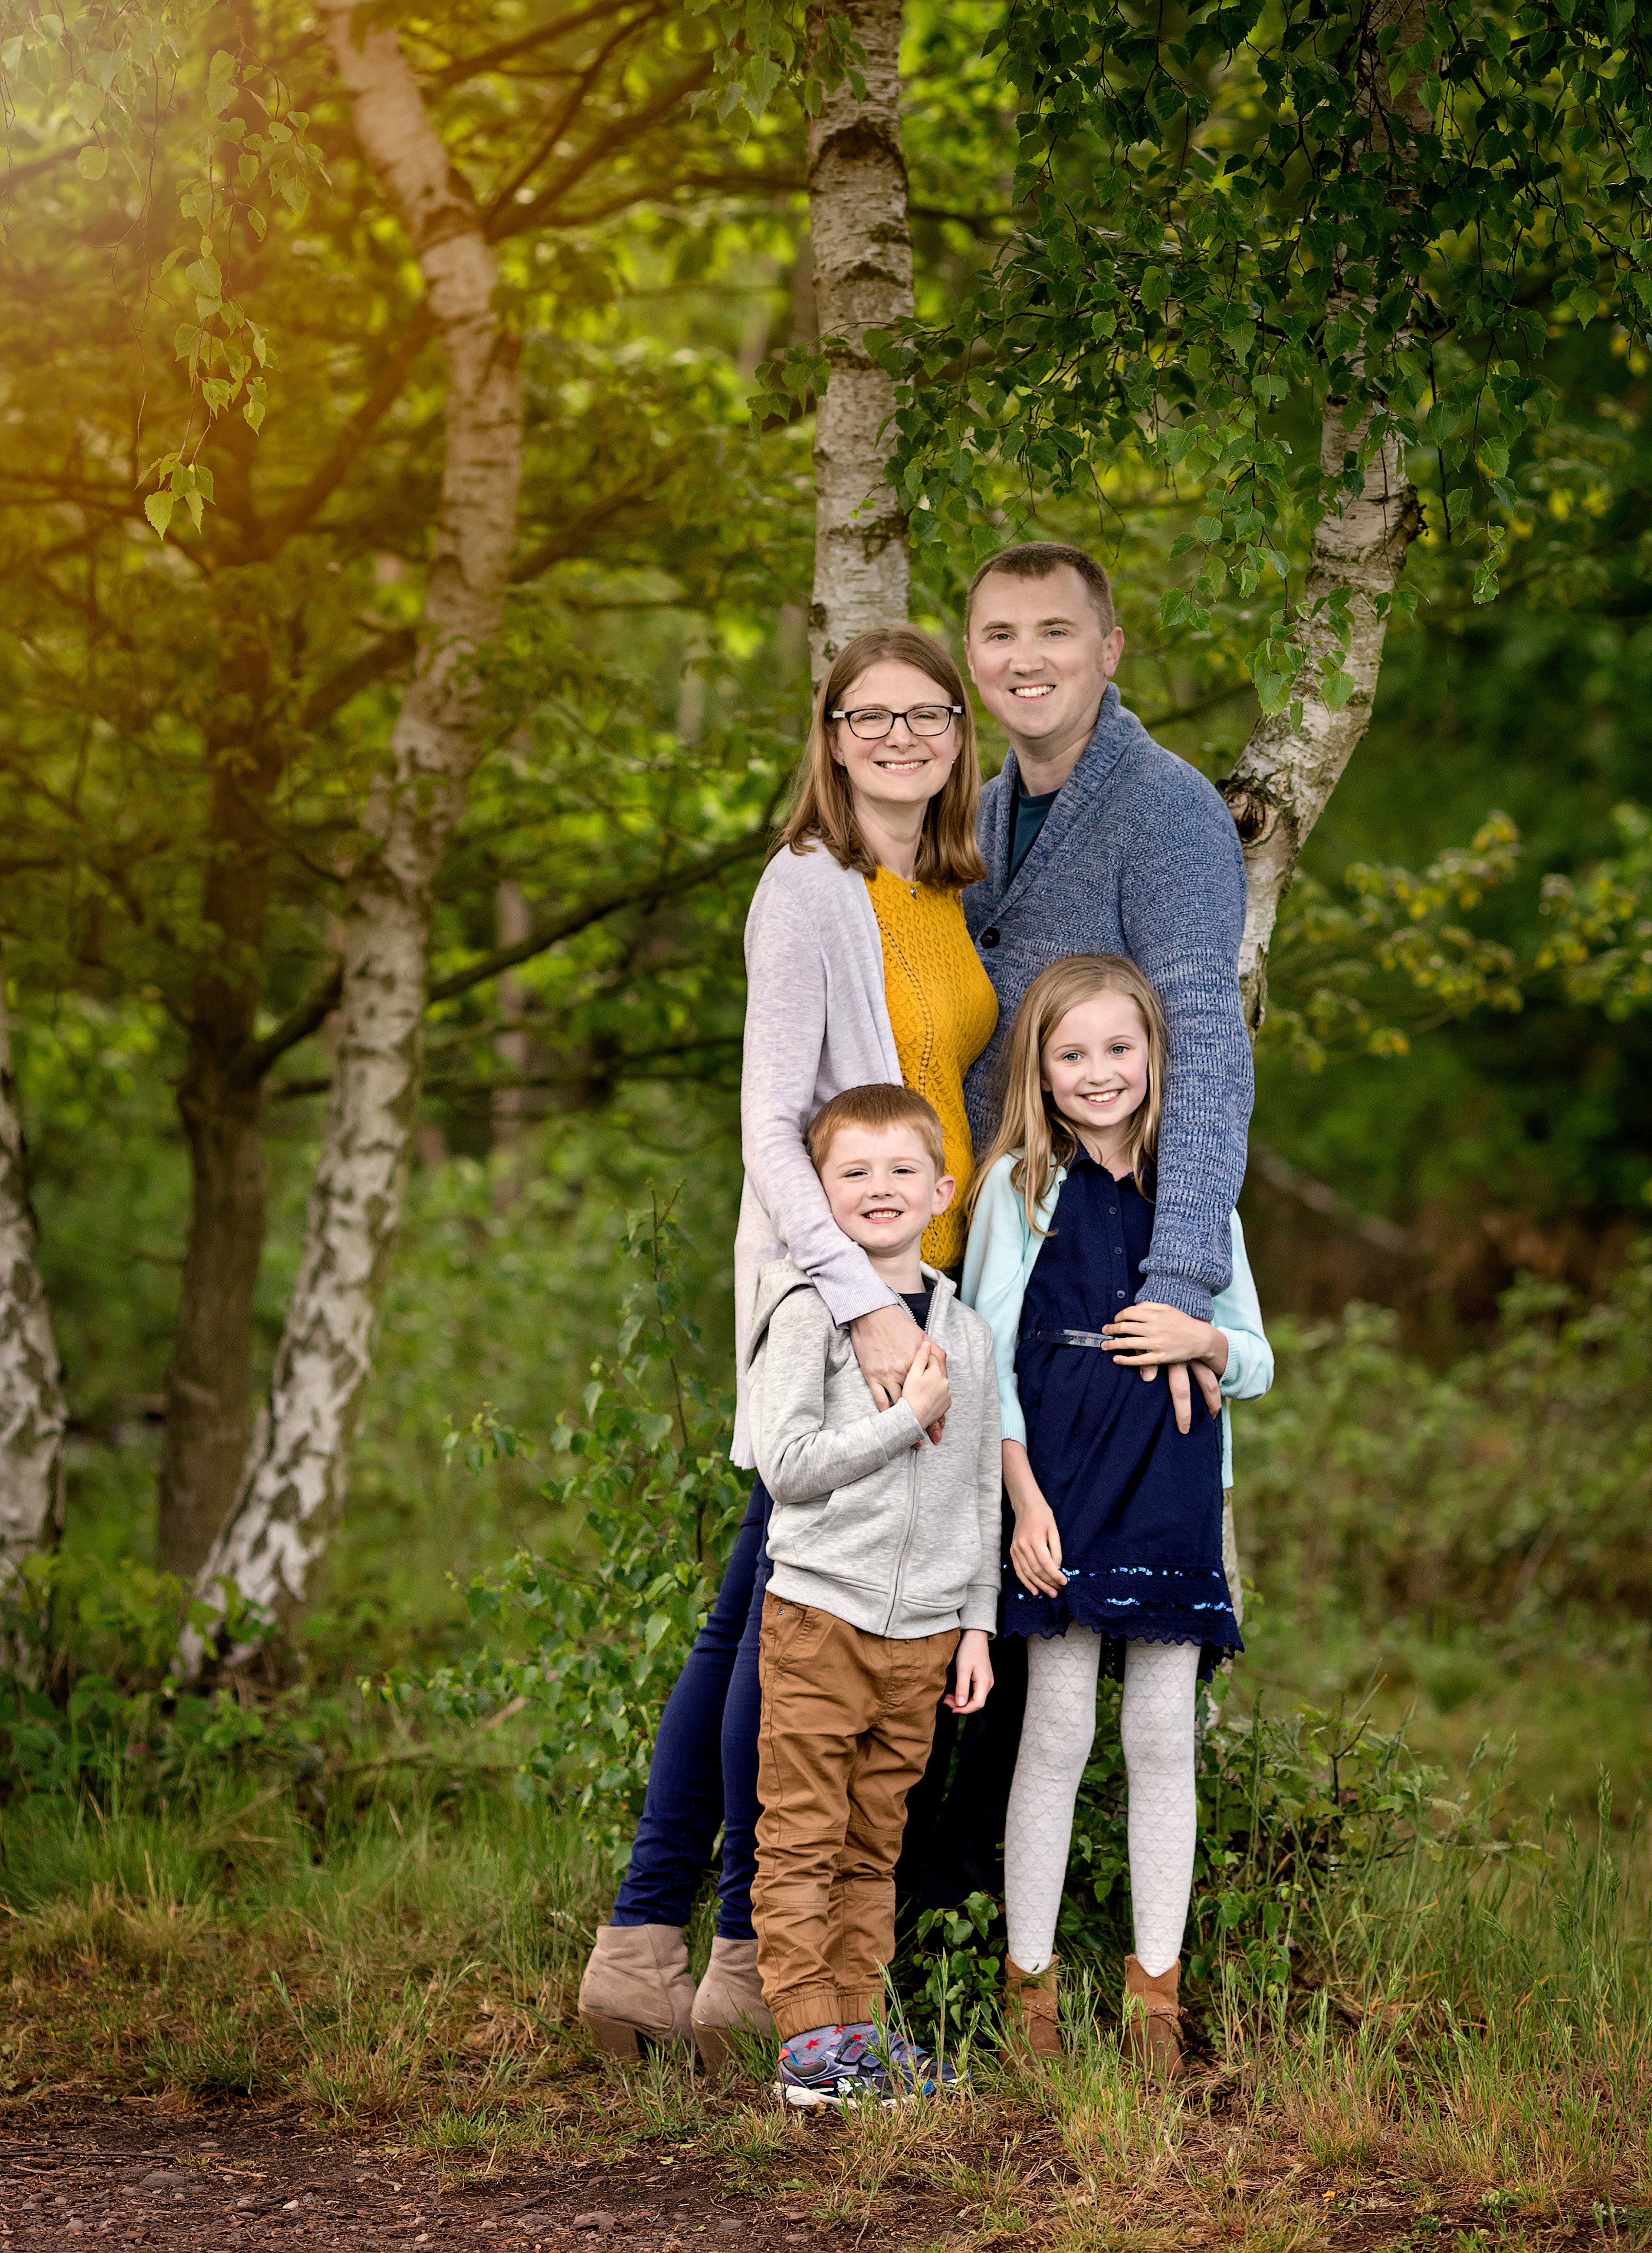 Outdoor family photography session